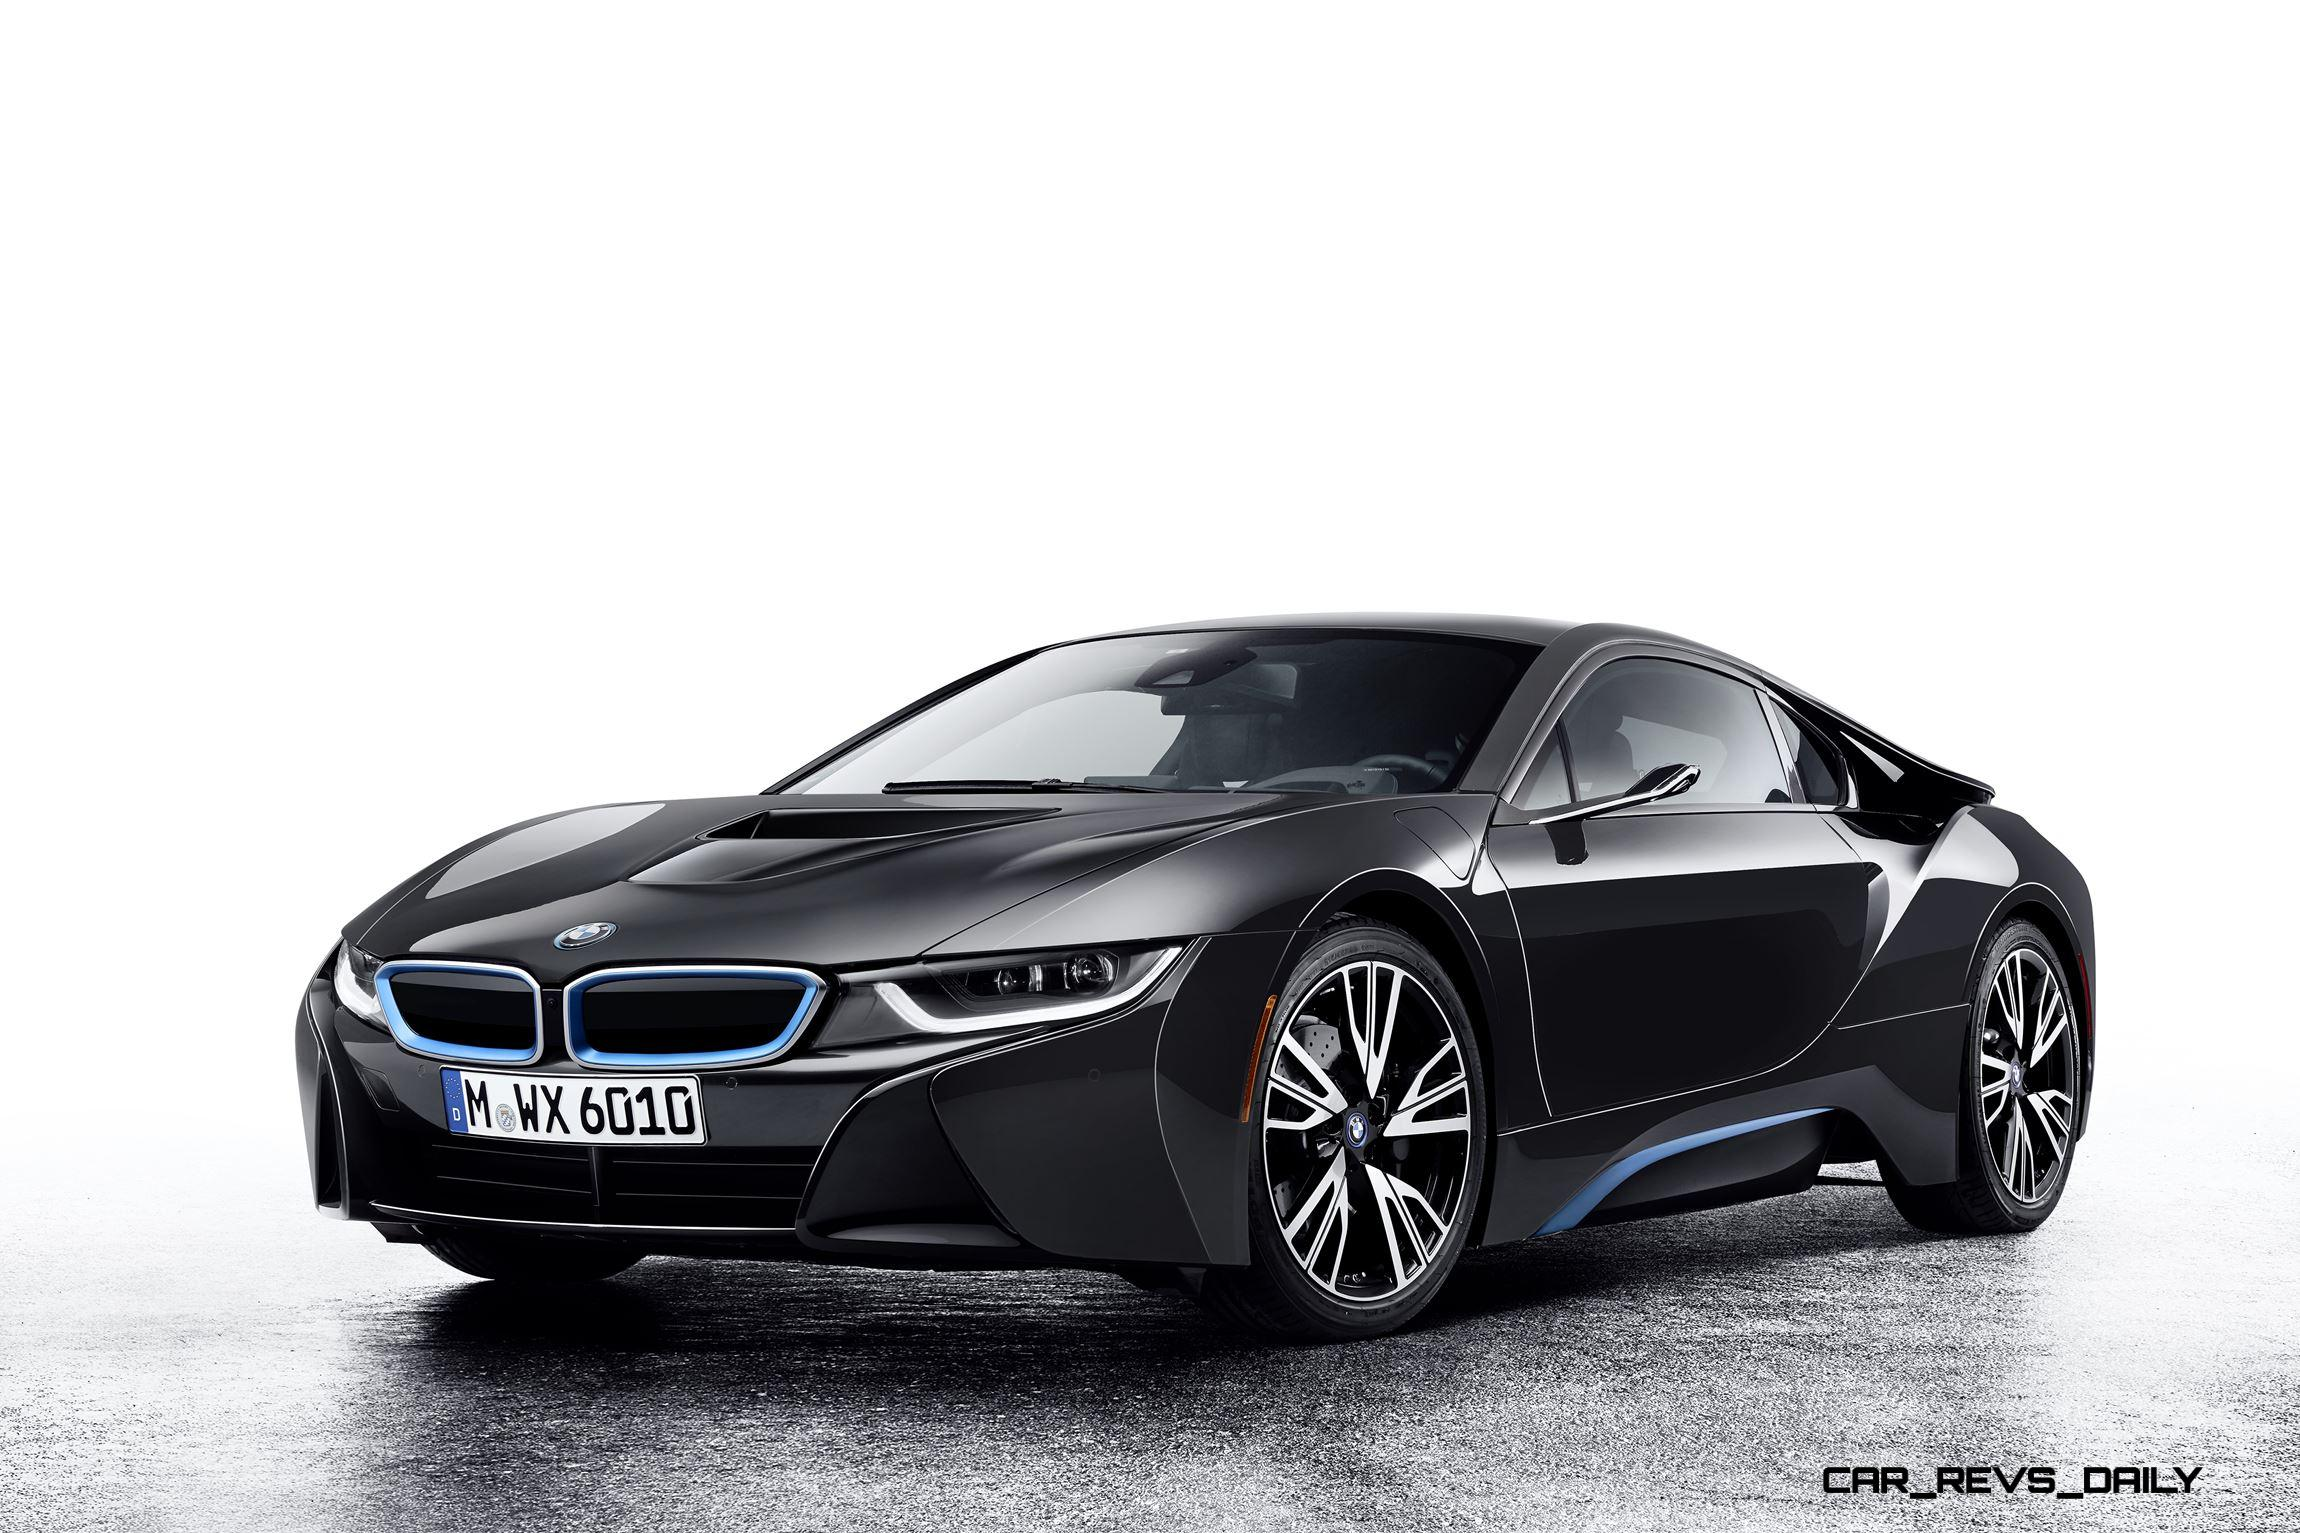 2017 bmw i8 spyder teased via bmw i vision future interaction connectedride hud cycle helmets. Black Bedroom Furniture Sets. Home Design Ideas